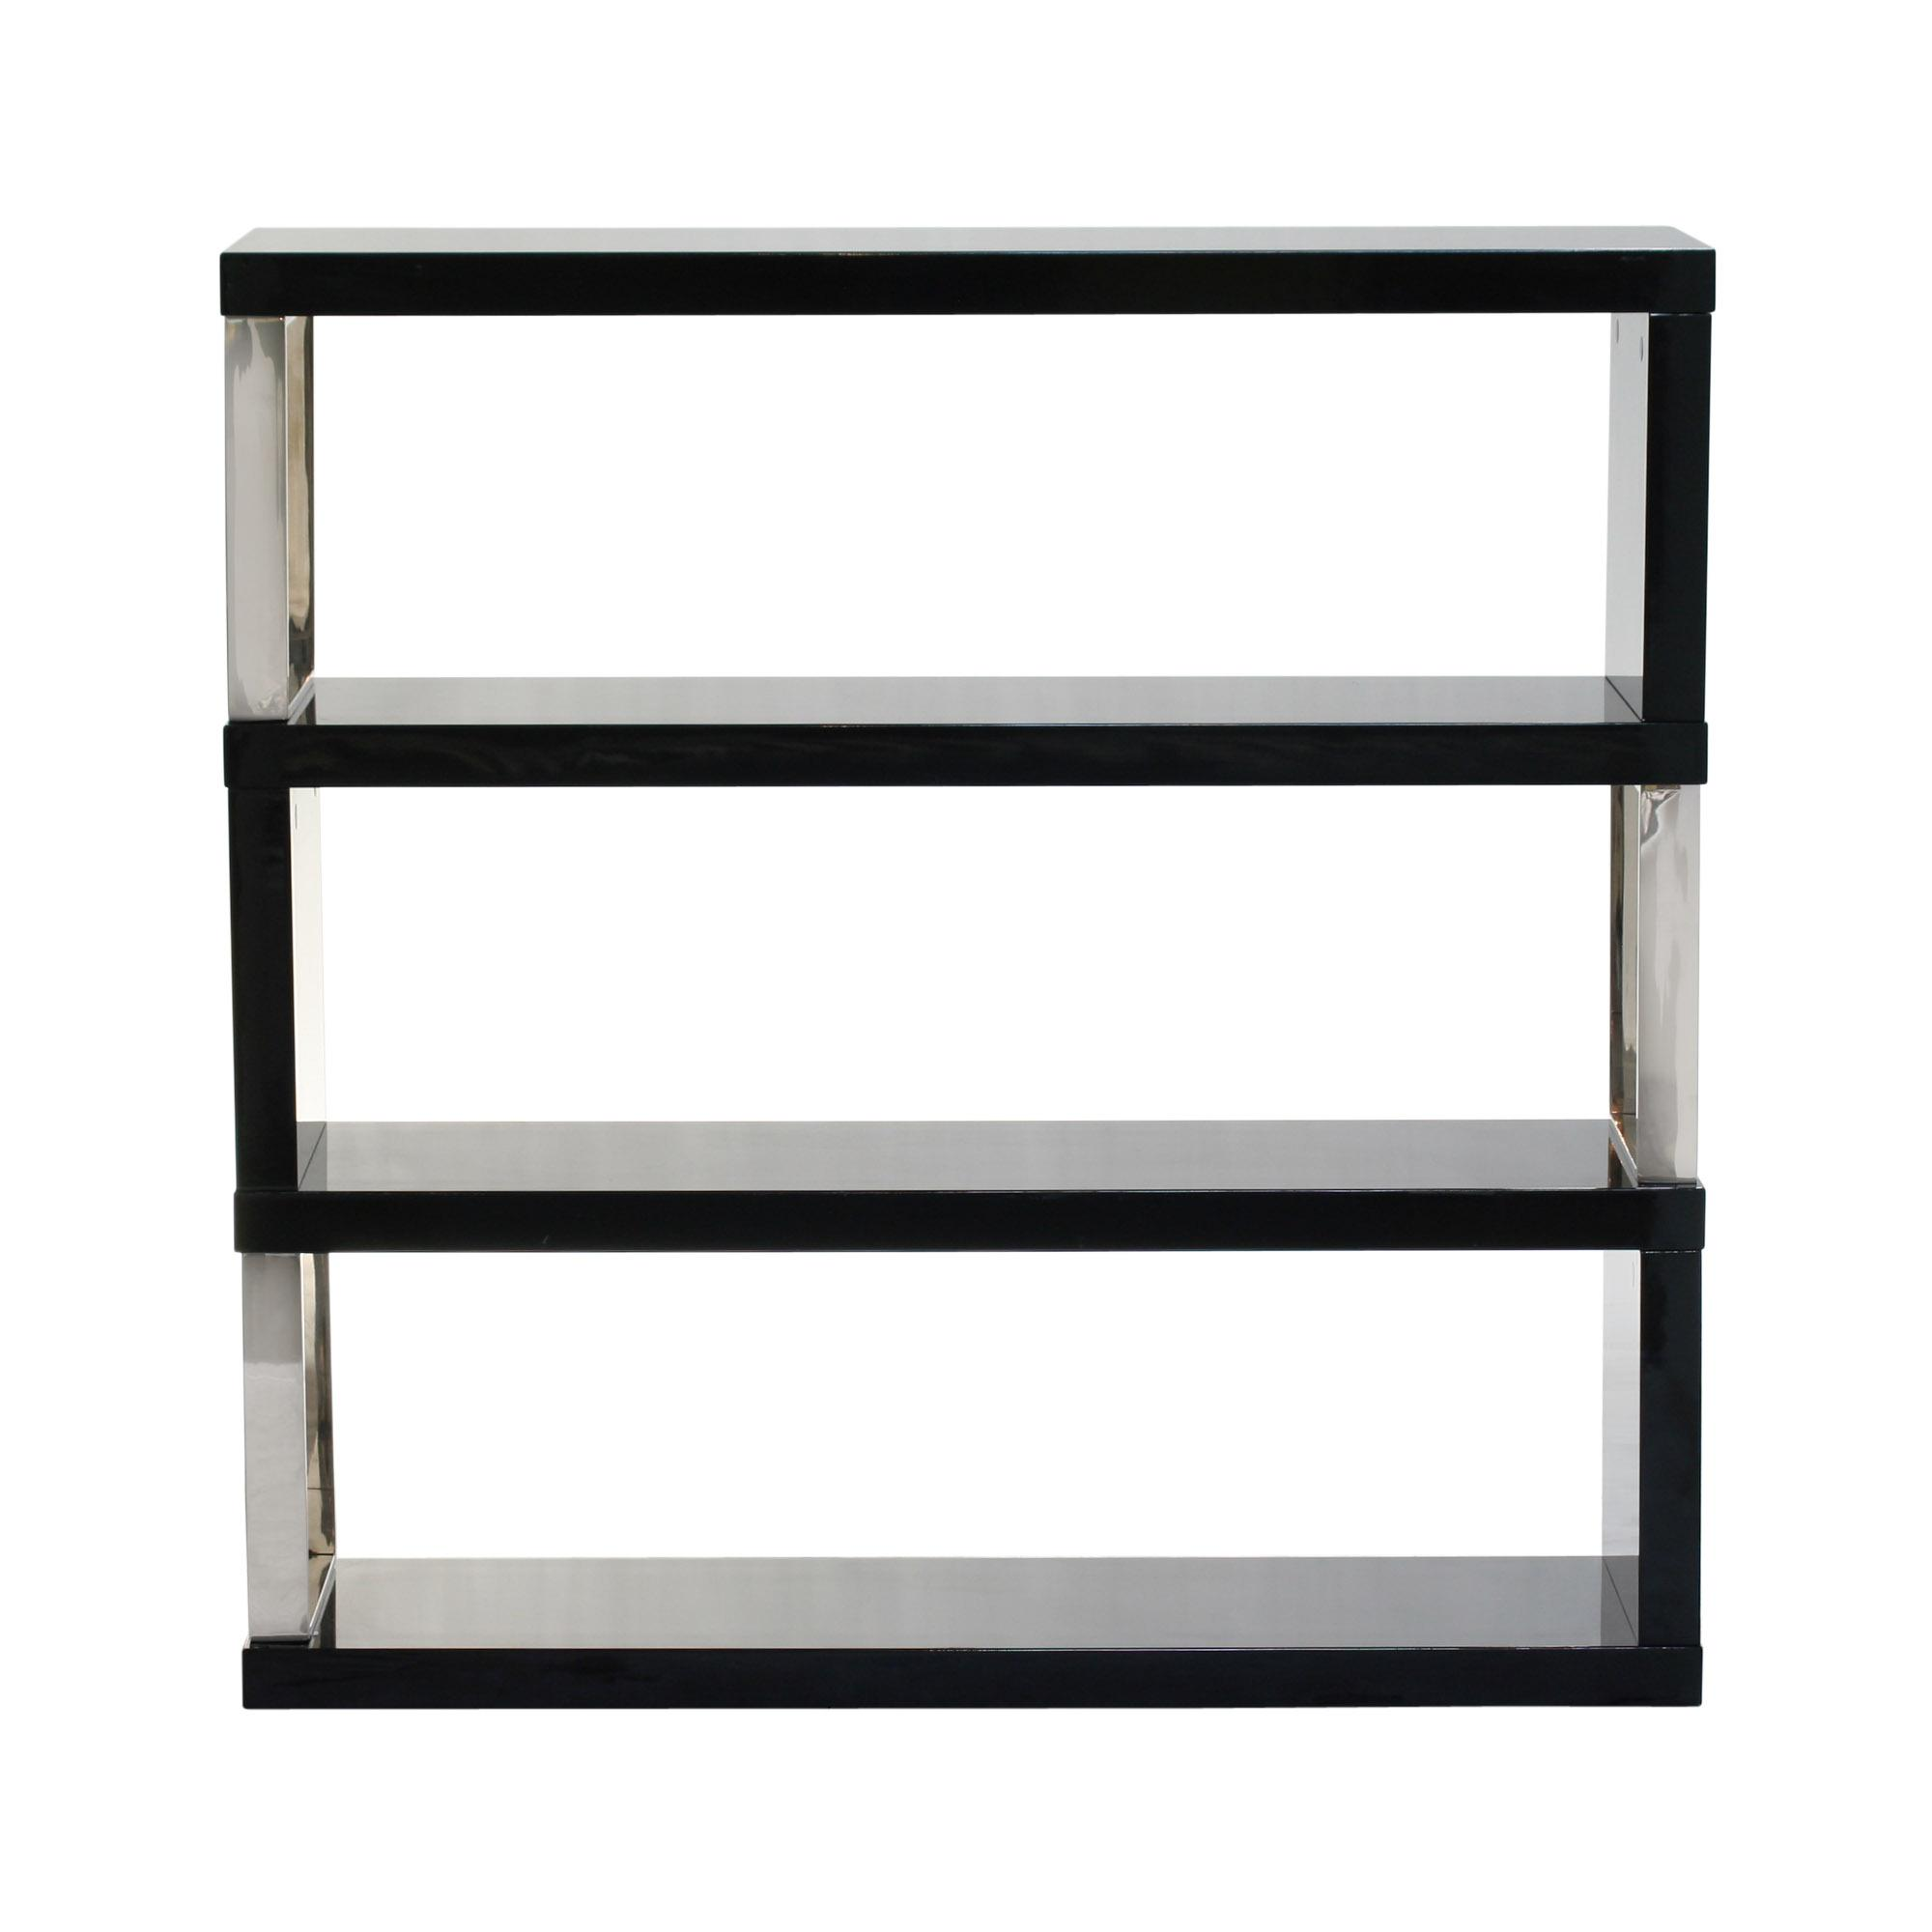 Diamond Sofa Home Accents Low Profile Shelf Unit - Item Number: 11032SH01BL